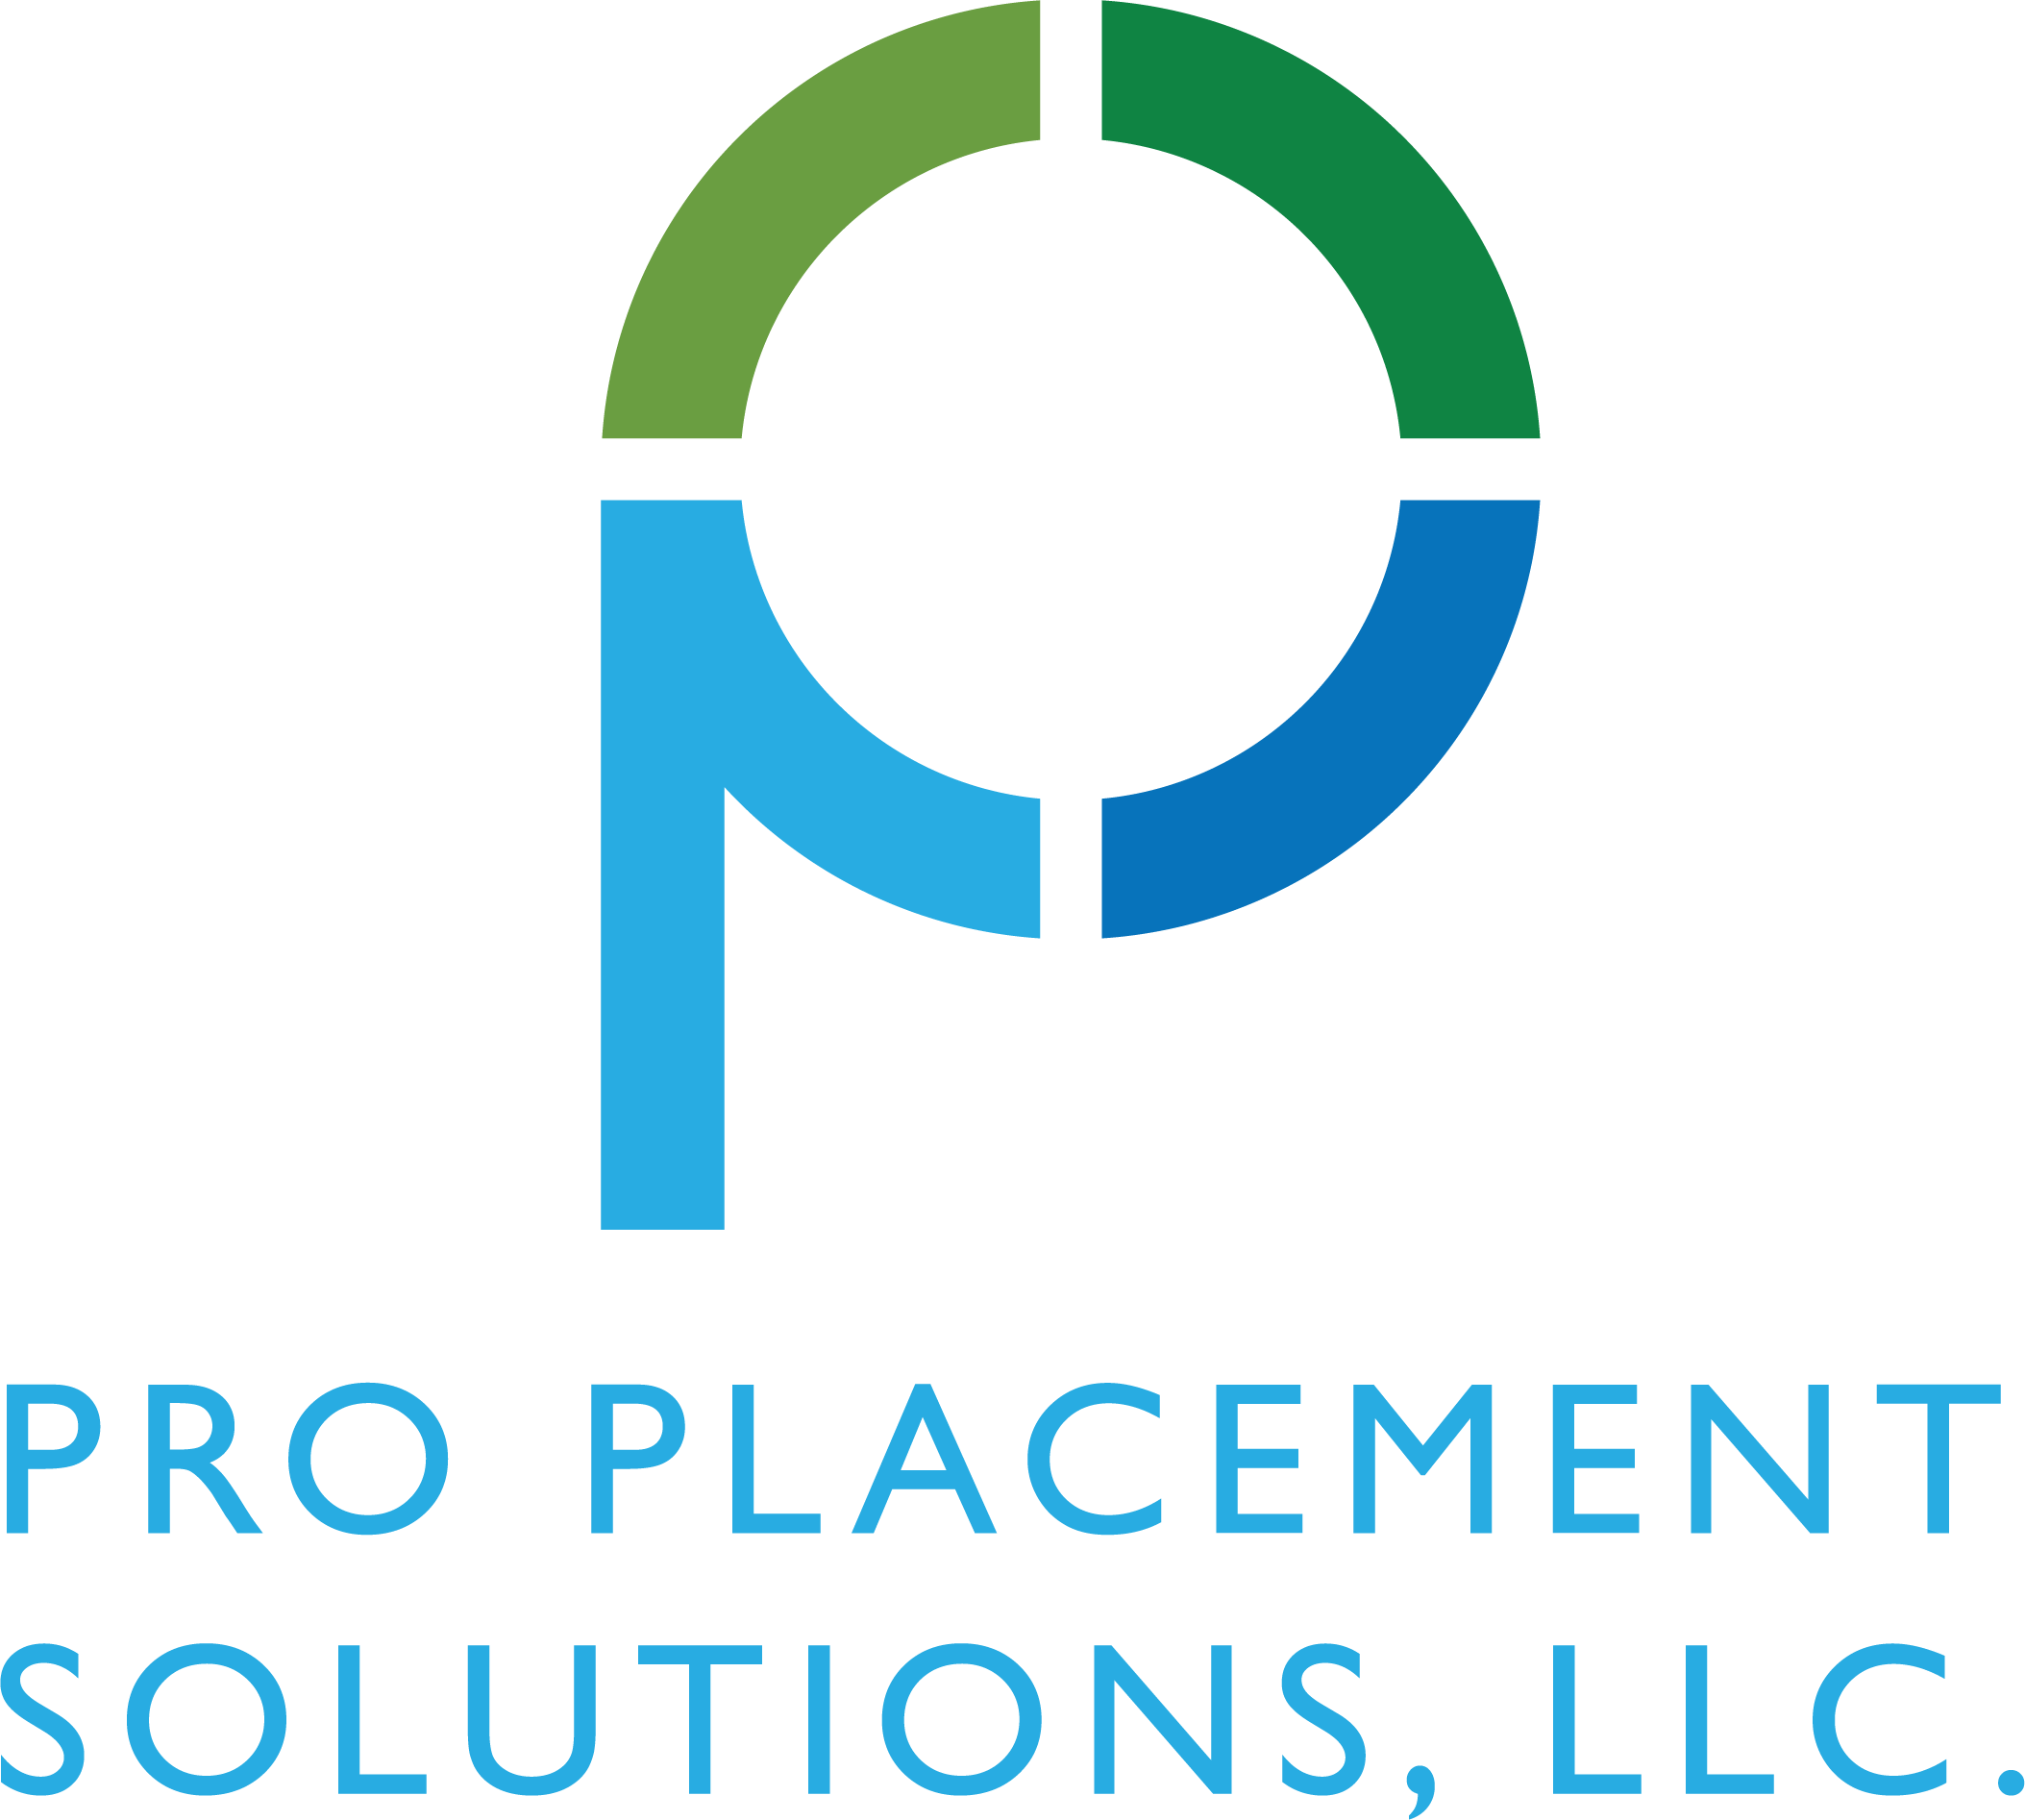 PRO PLACEMENT SOLUTIONS